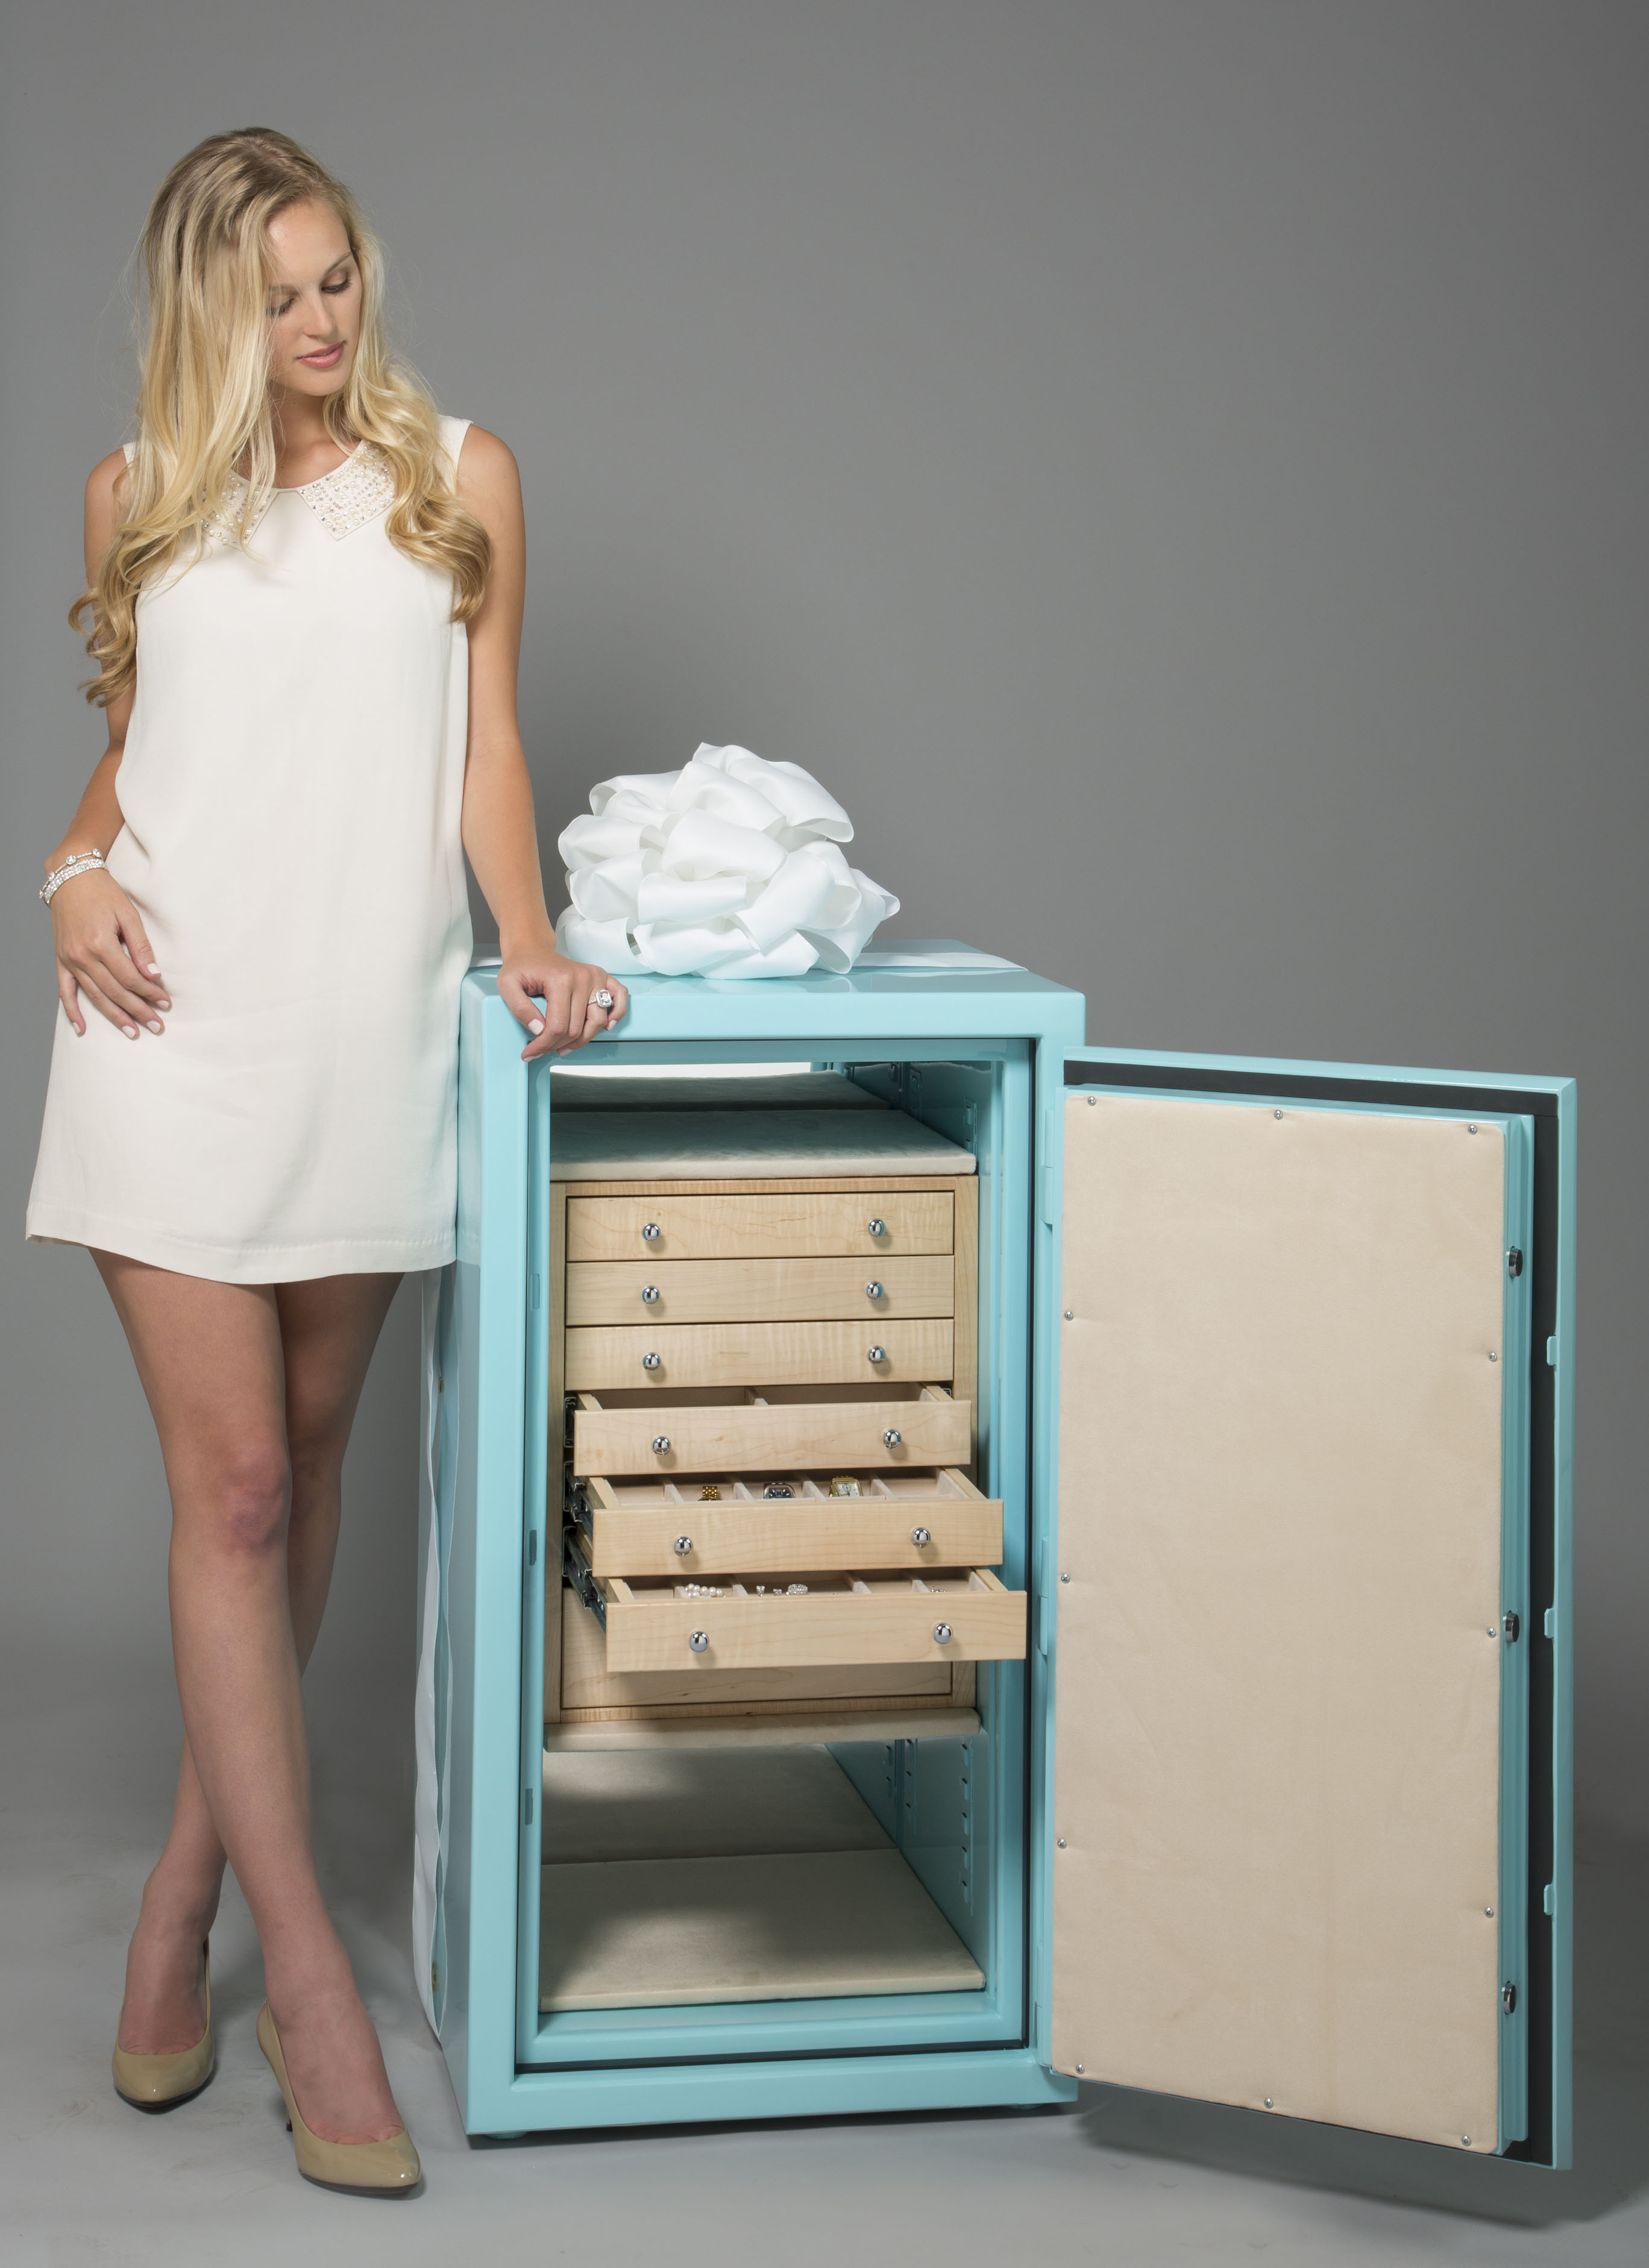 Introducing Casoro Jewelry Safes The Ultimate Gift This